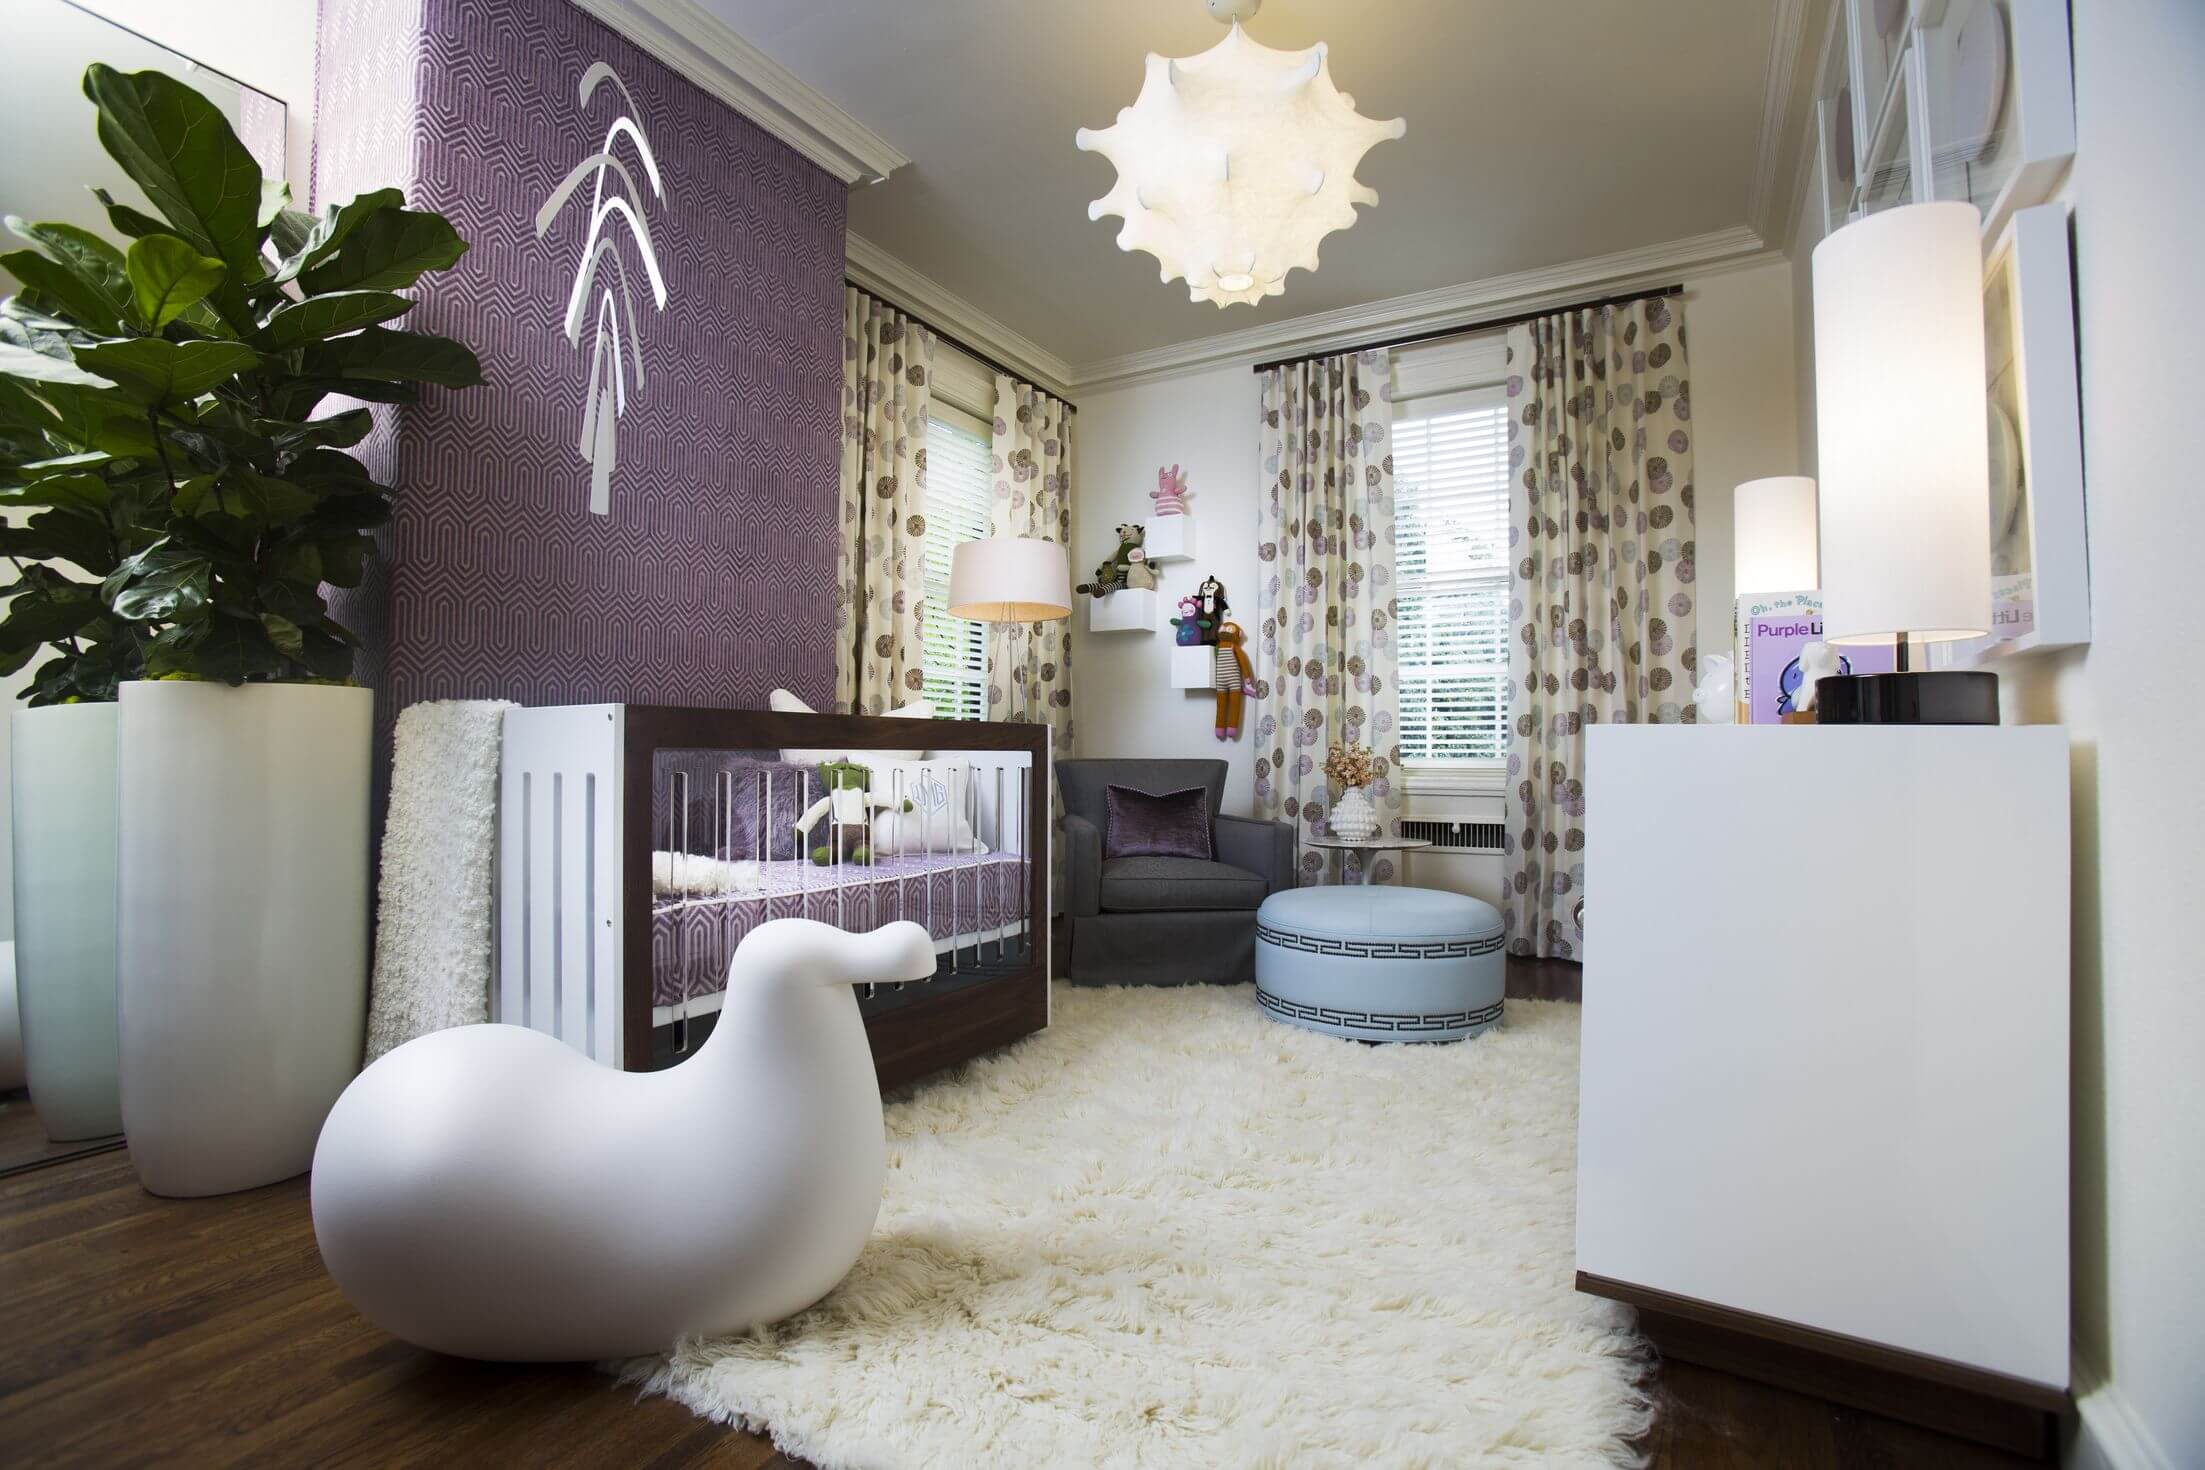 purple wall design and matching bedding accent this mostly white nursery featuring fur rug over - Baby Wall Designs